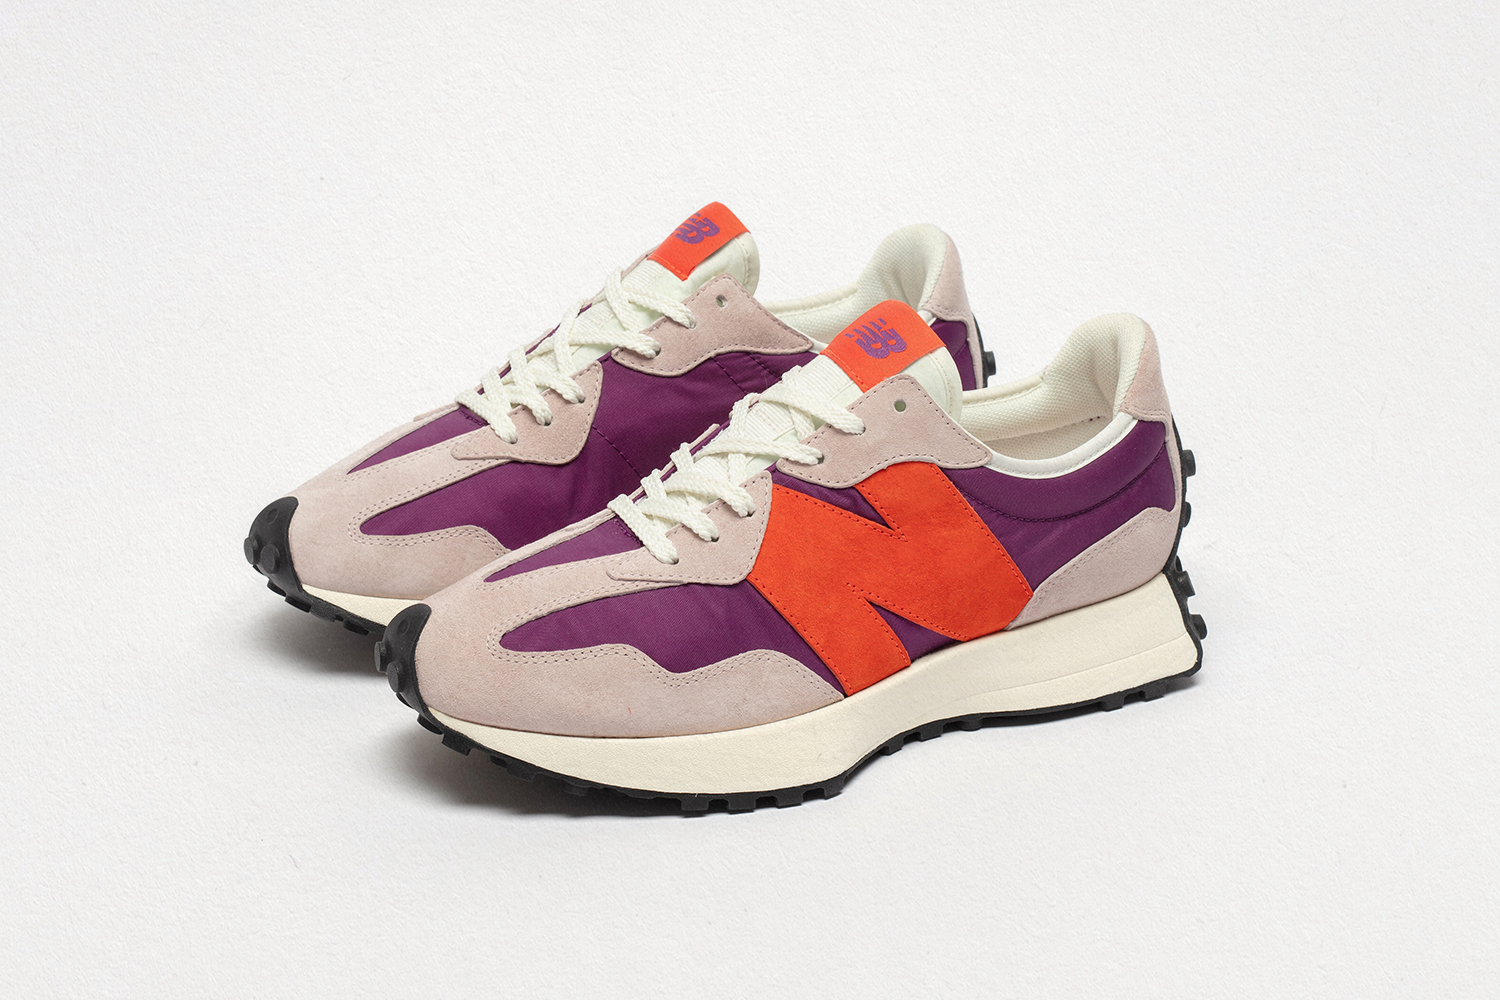 New Balance 327 purple/grey/orange  - size? exclusive